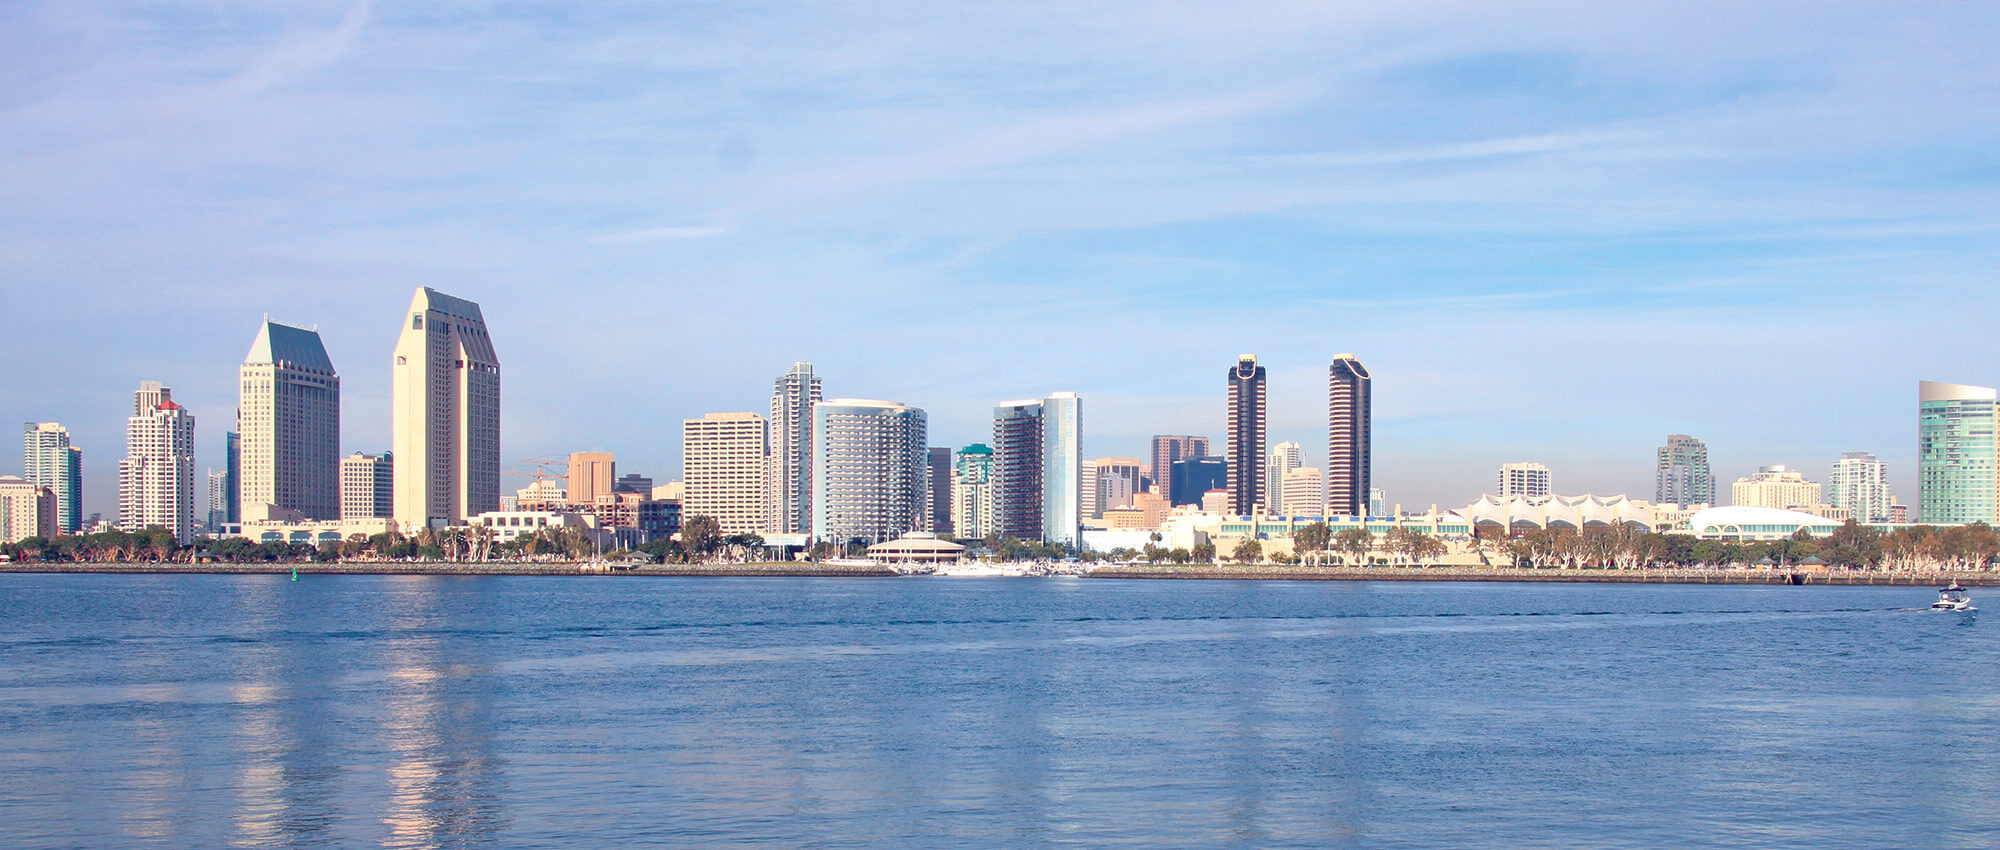 San Diego's Waterfront Walking Guide